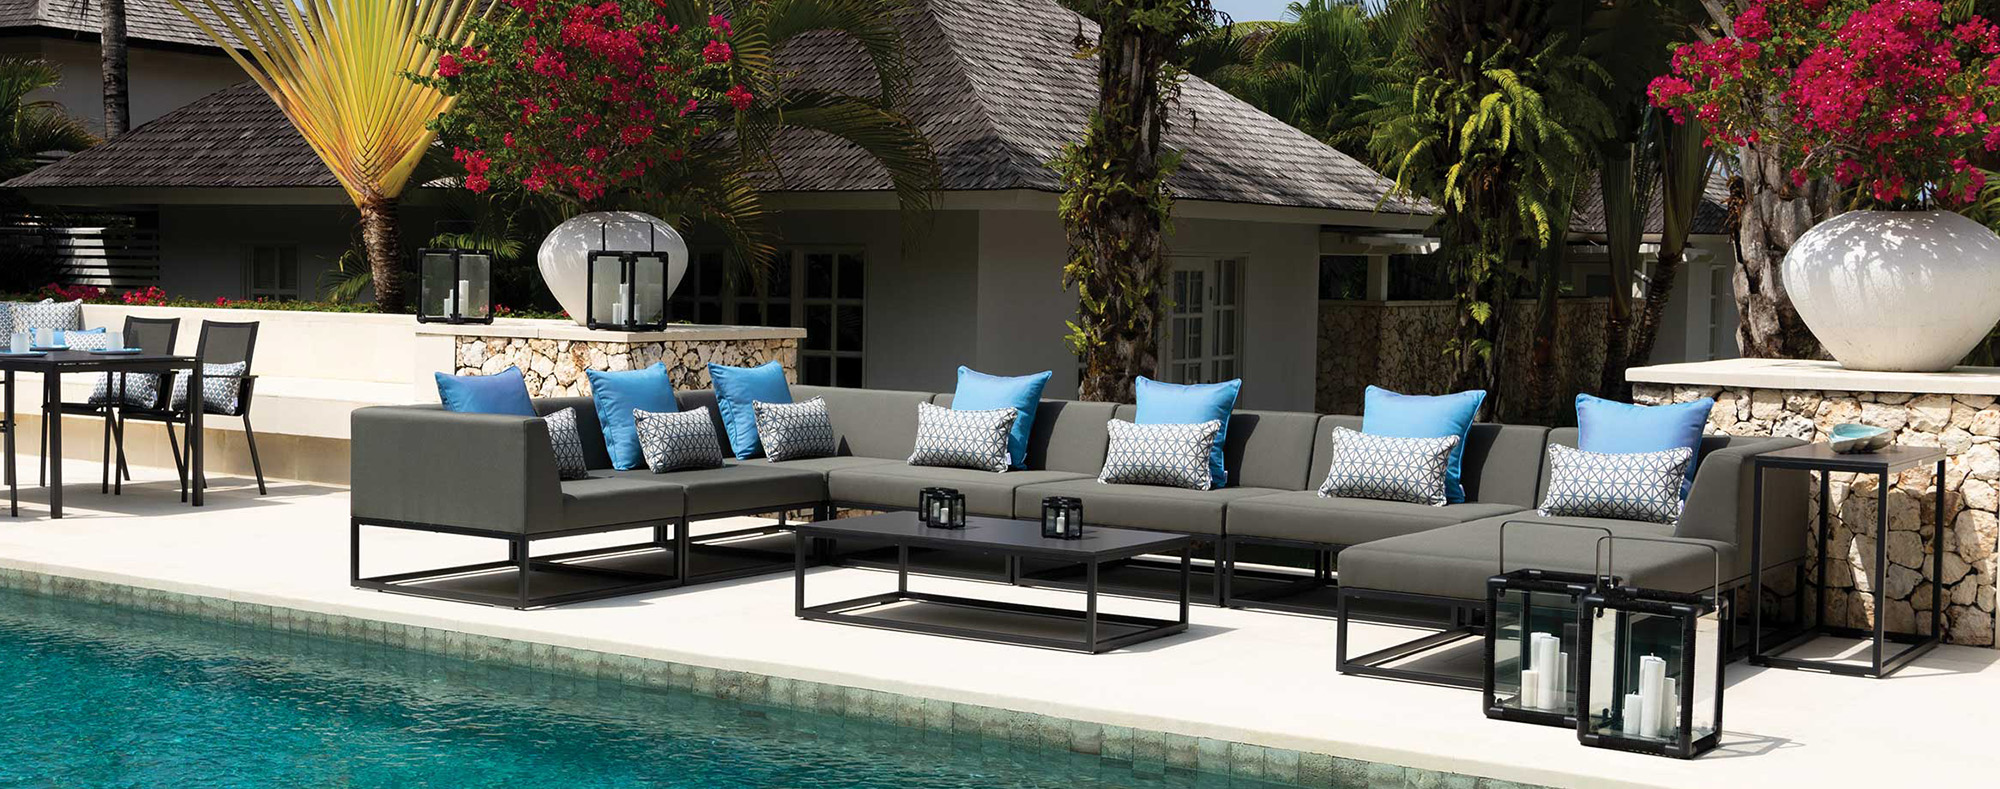 Luxury outdoor sofa set by the pool